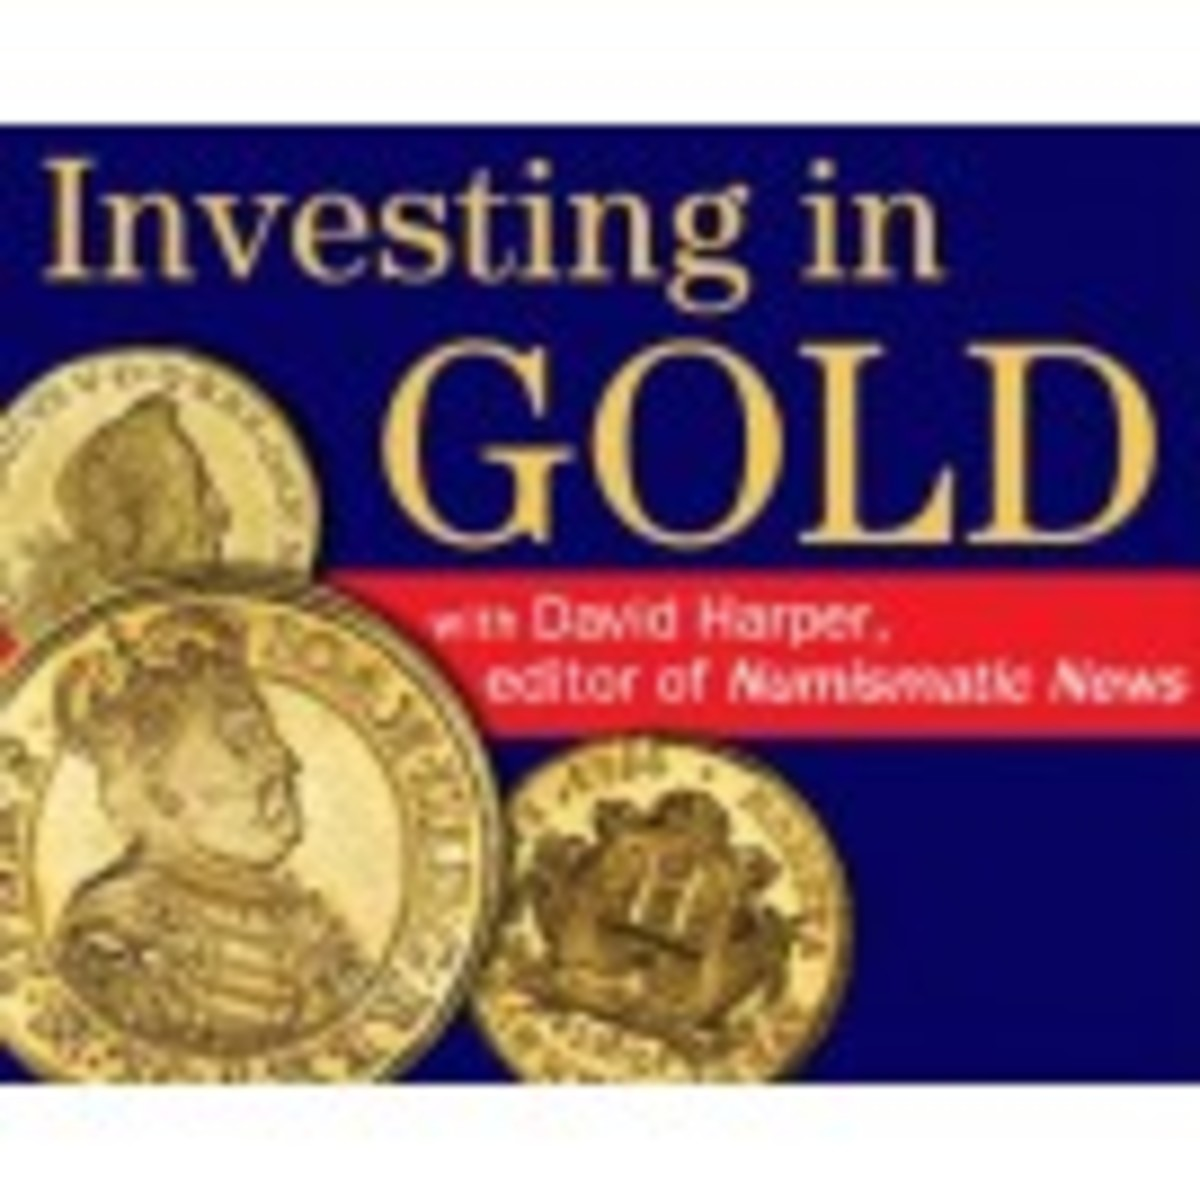 Get the facts about gold now, from a source you can trust!